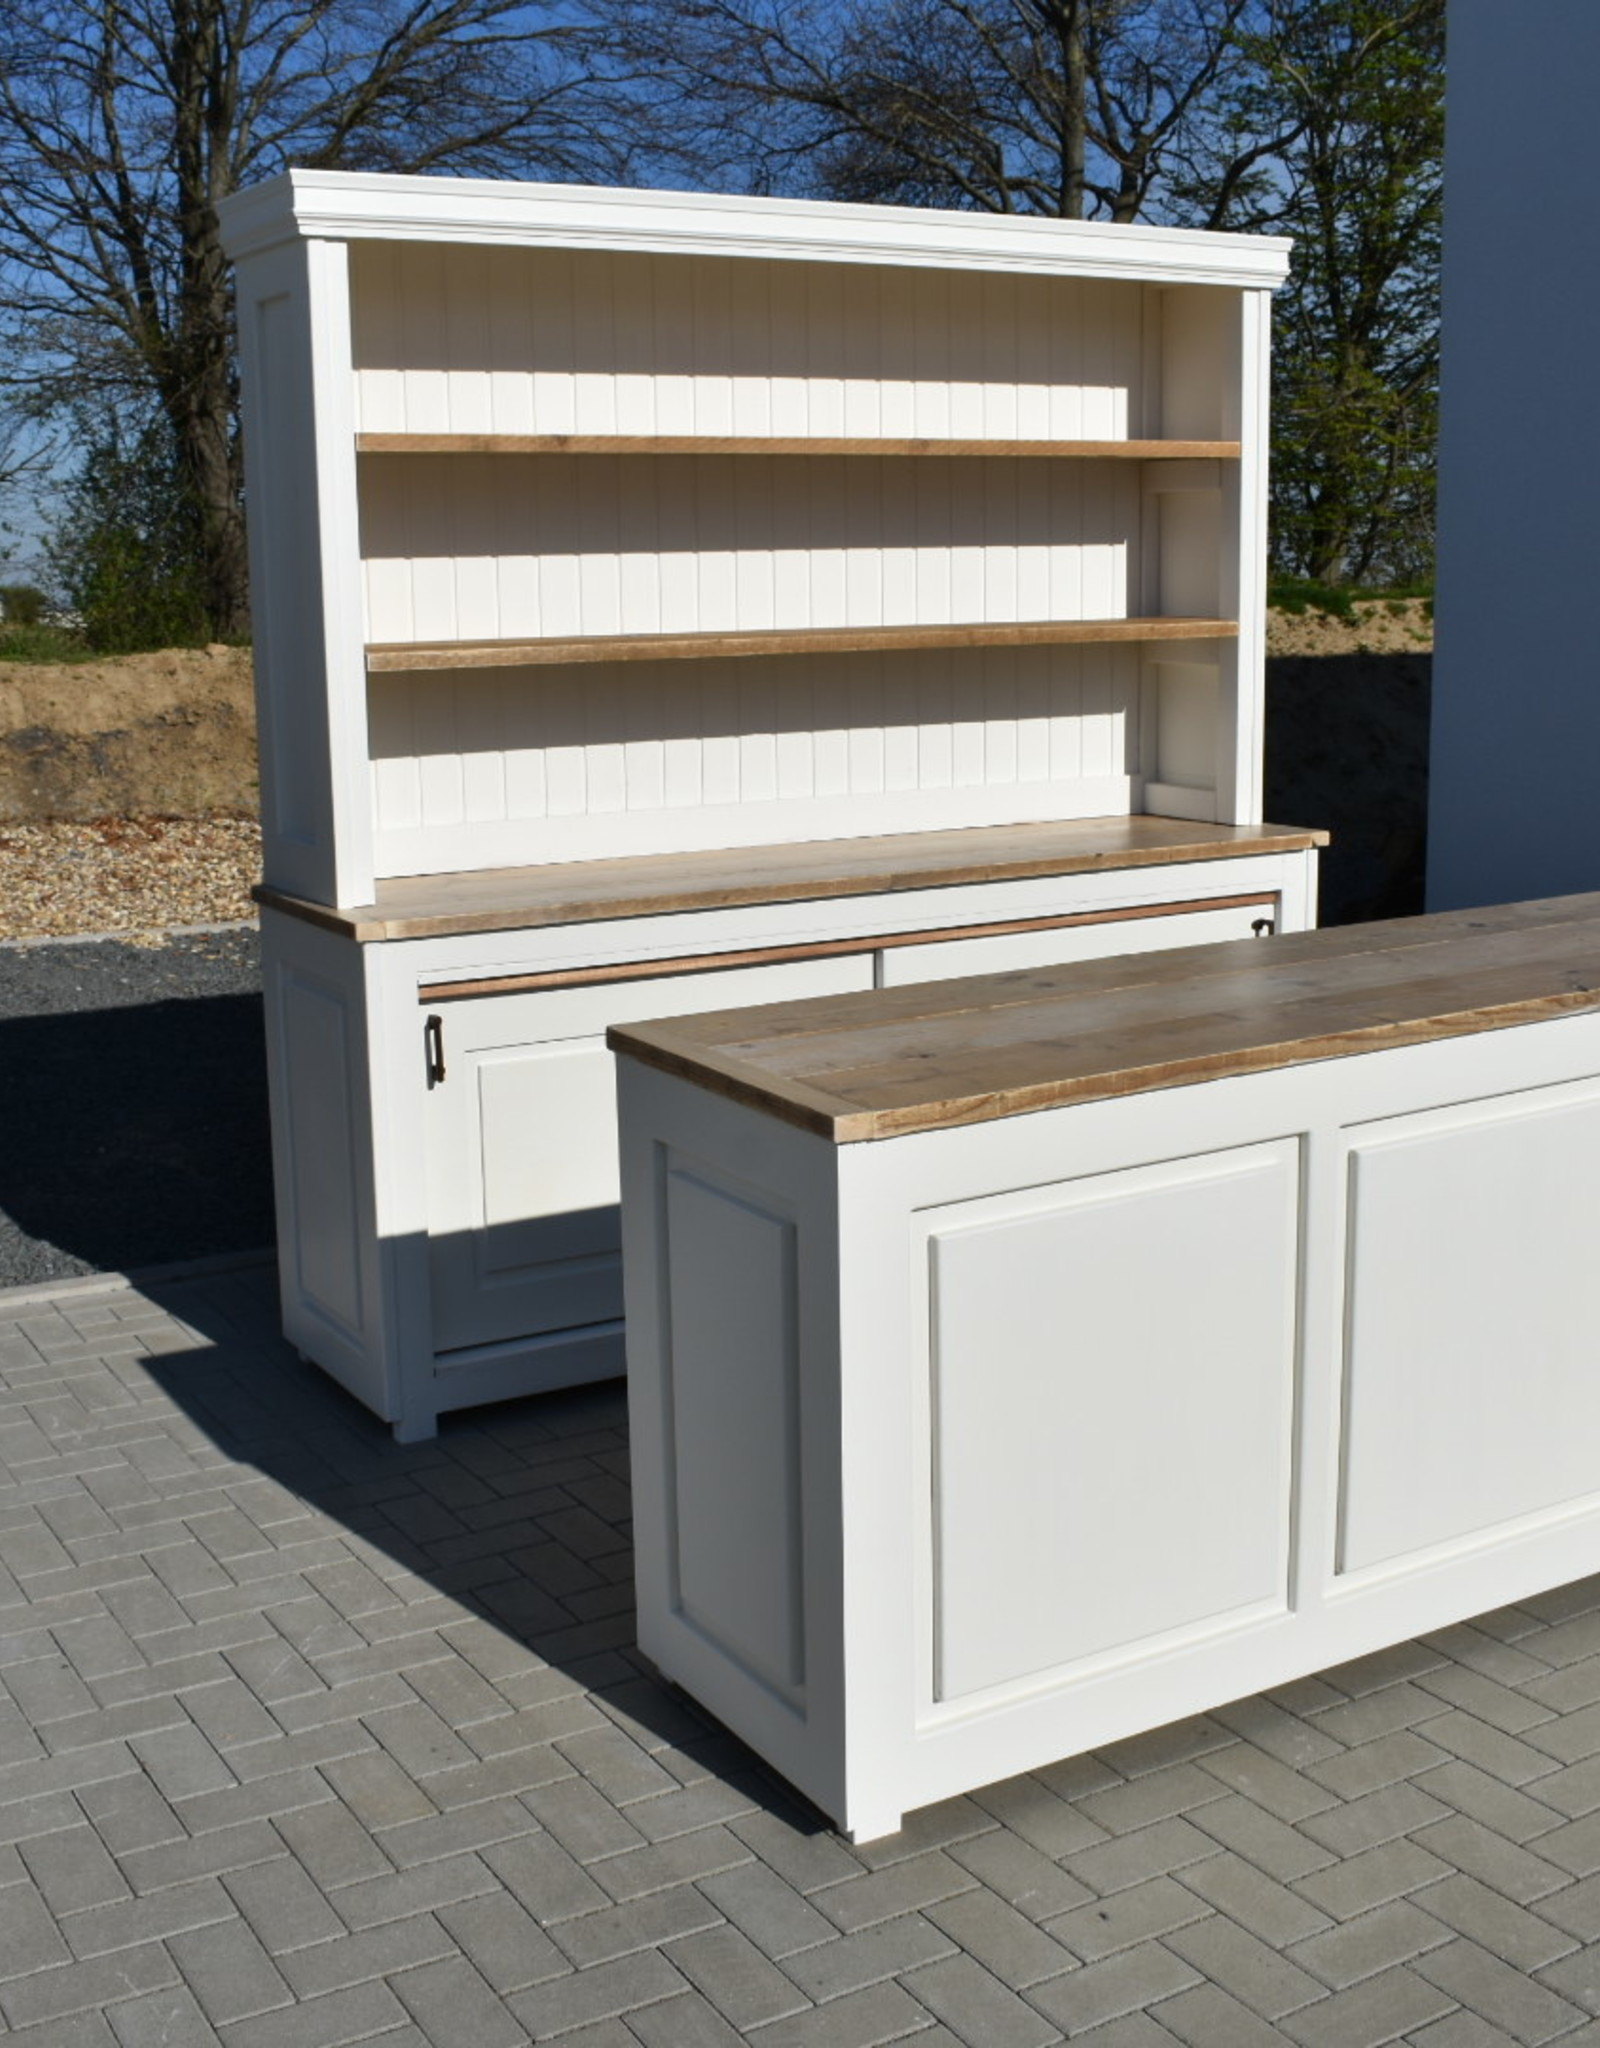 Set: Store Cabinet & counter